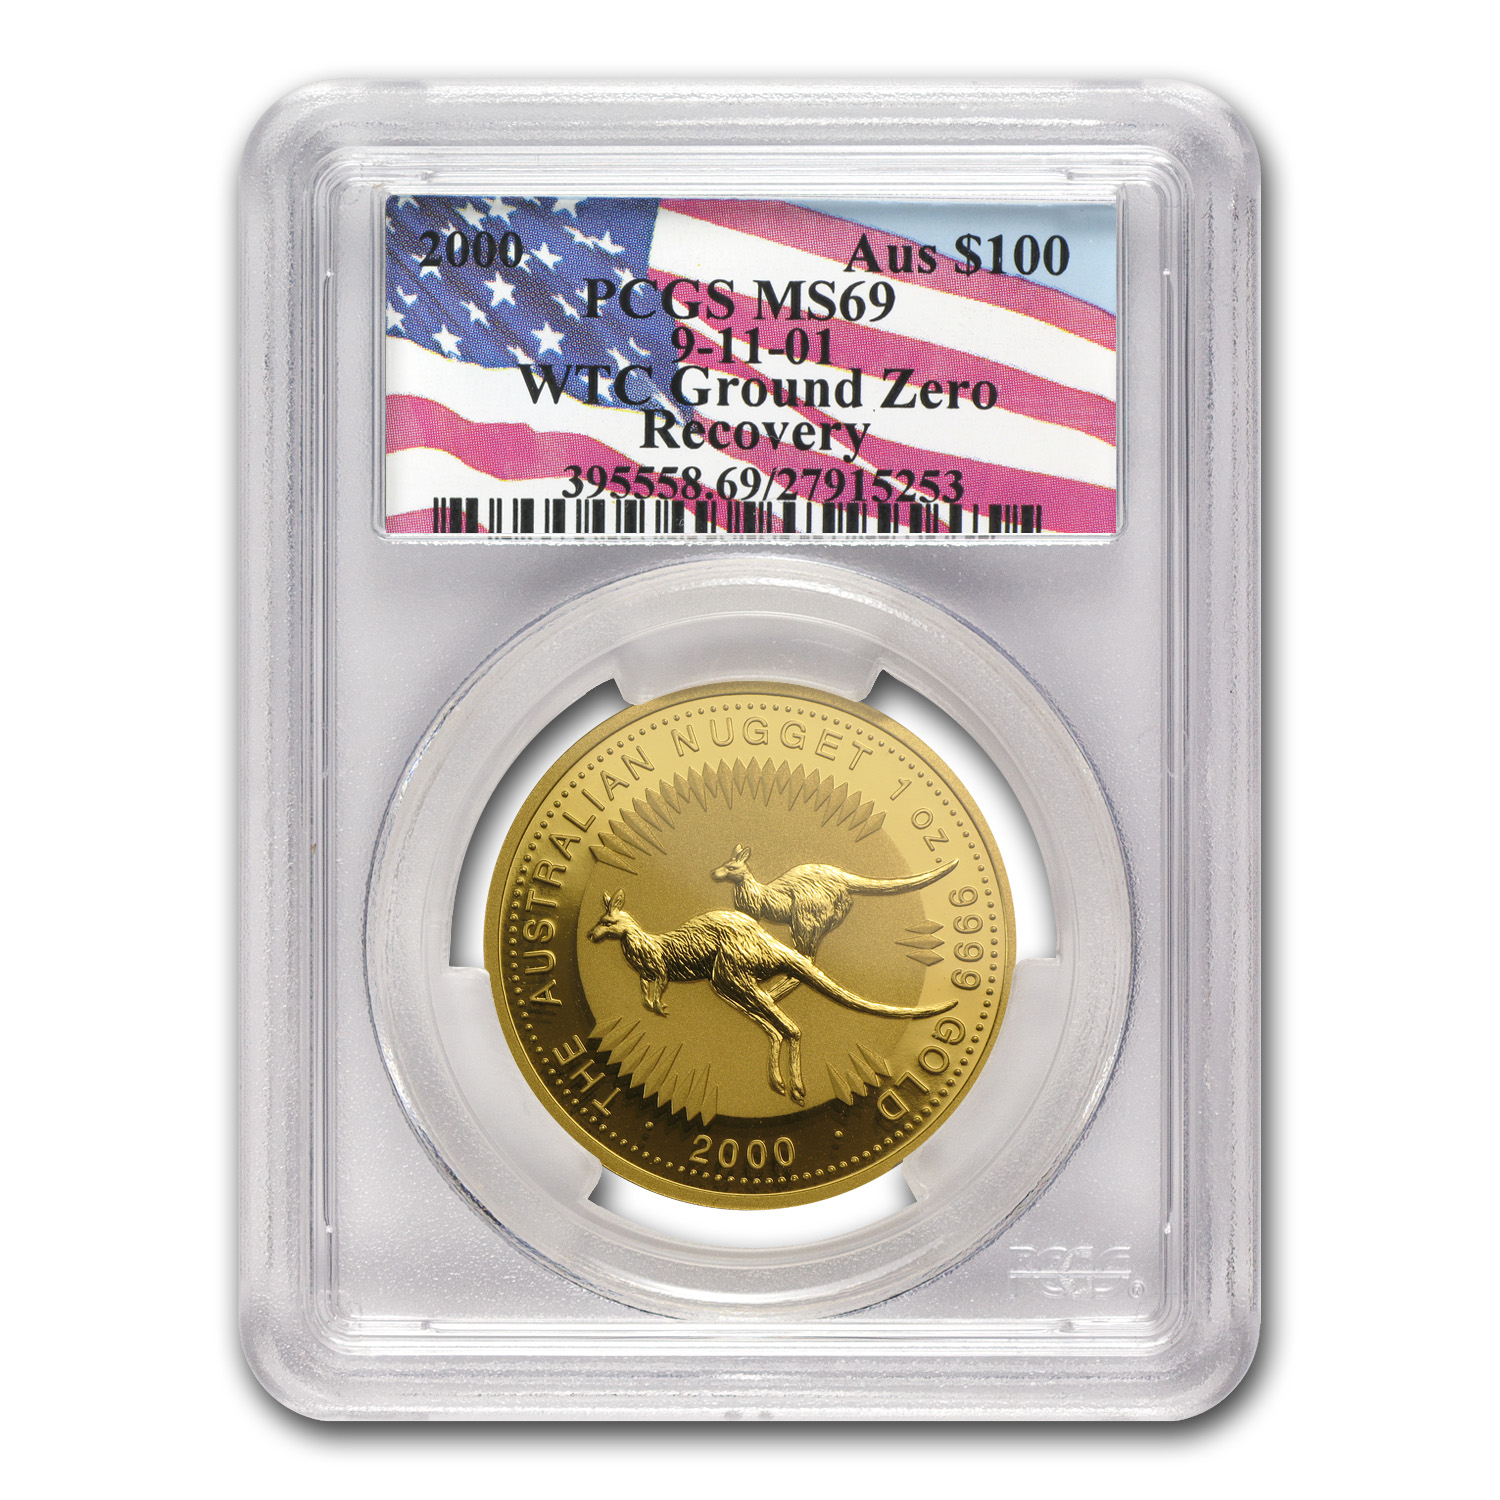 2000 Australia 1 oz Gold Nugget MS-69 PCGS (WTC Ground Zero)